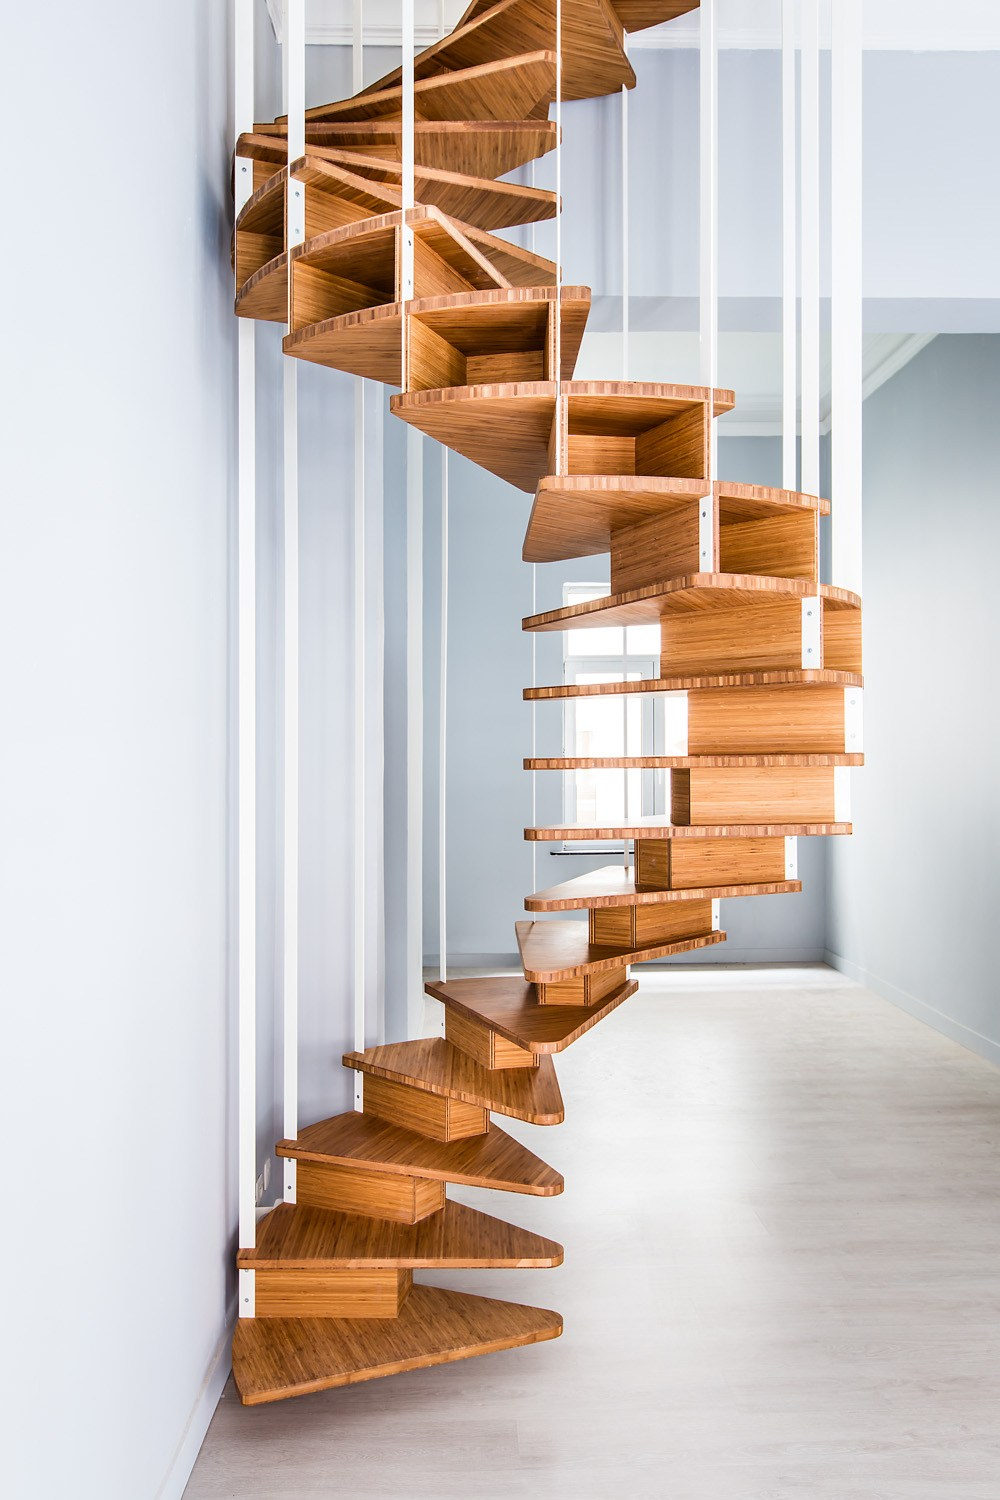 How to build a wooden spiral staircase